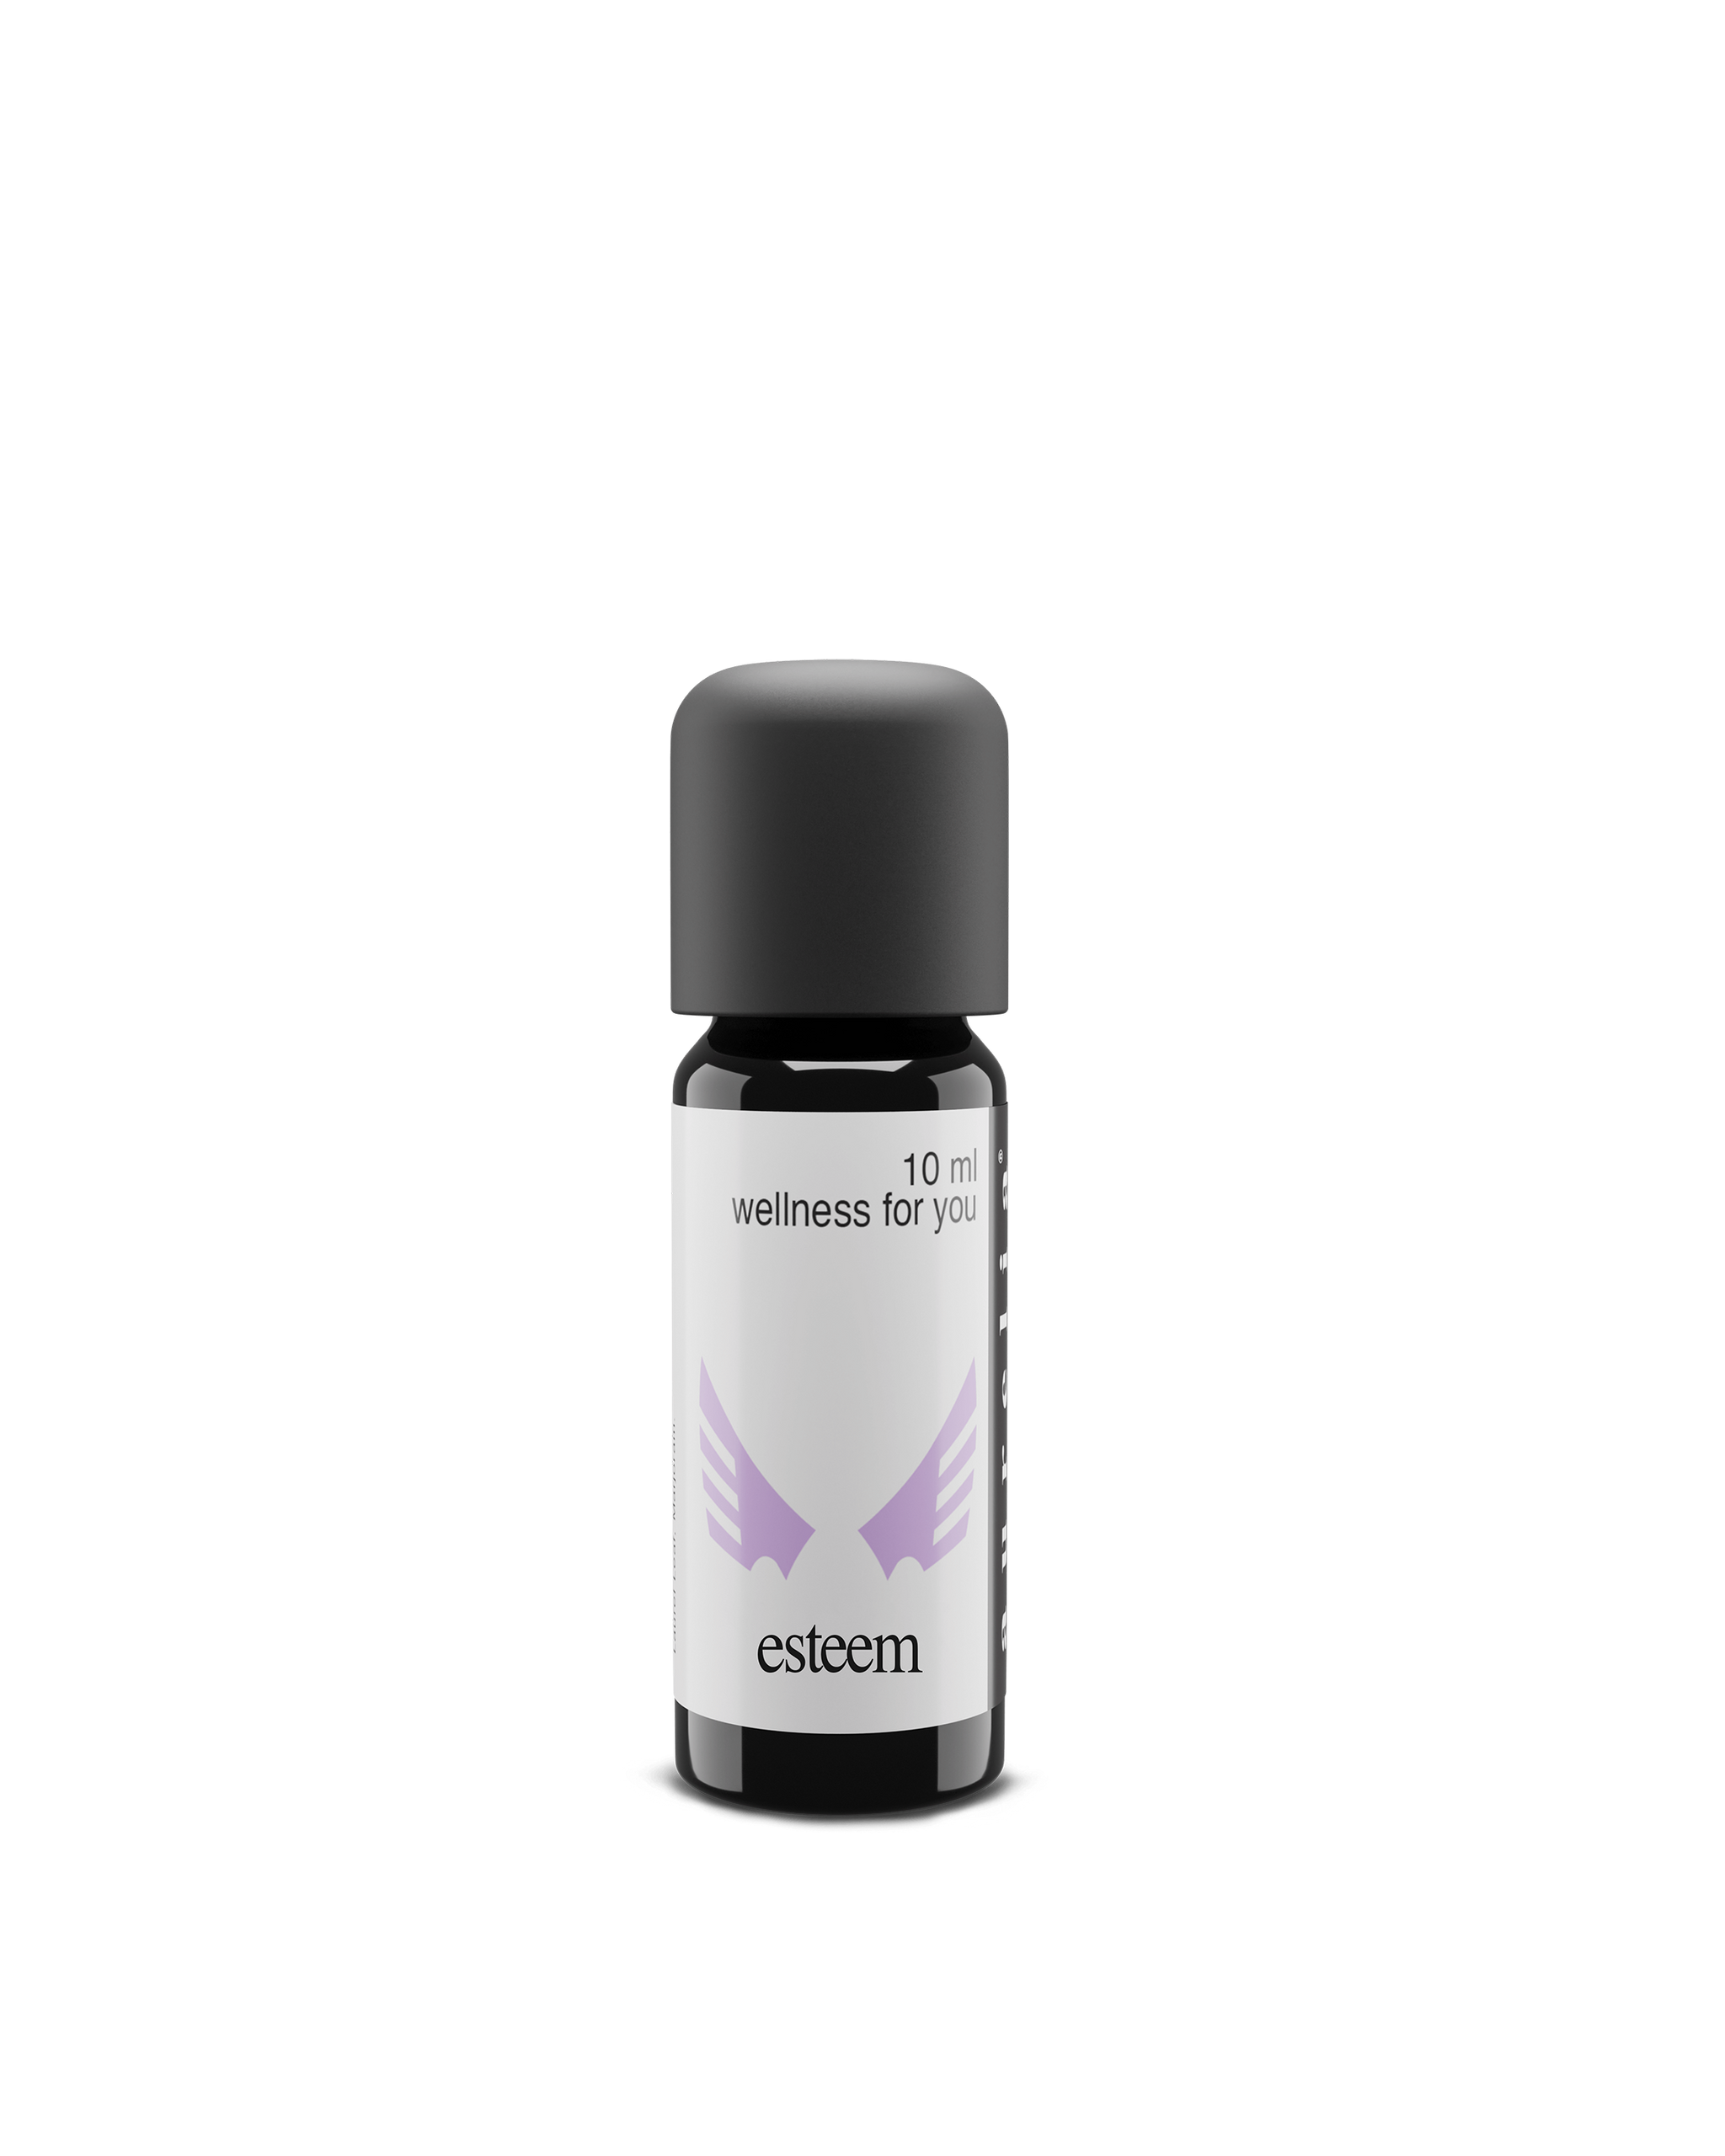 Esteem Essential Oil Blend